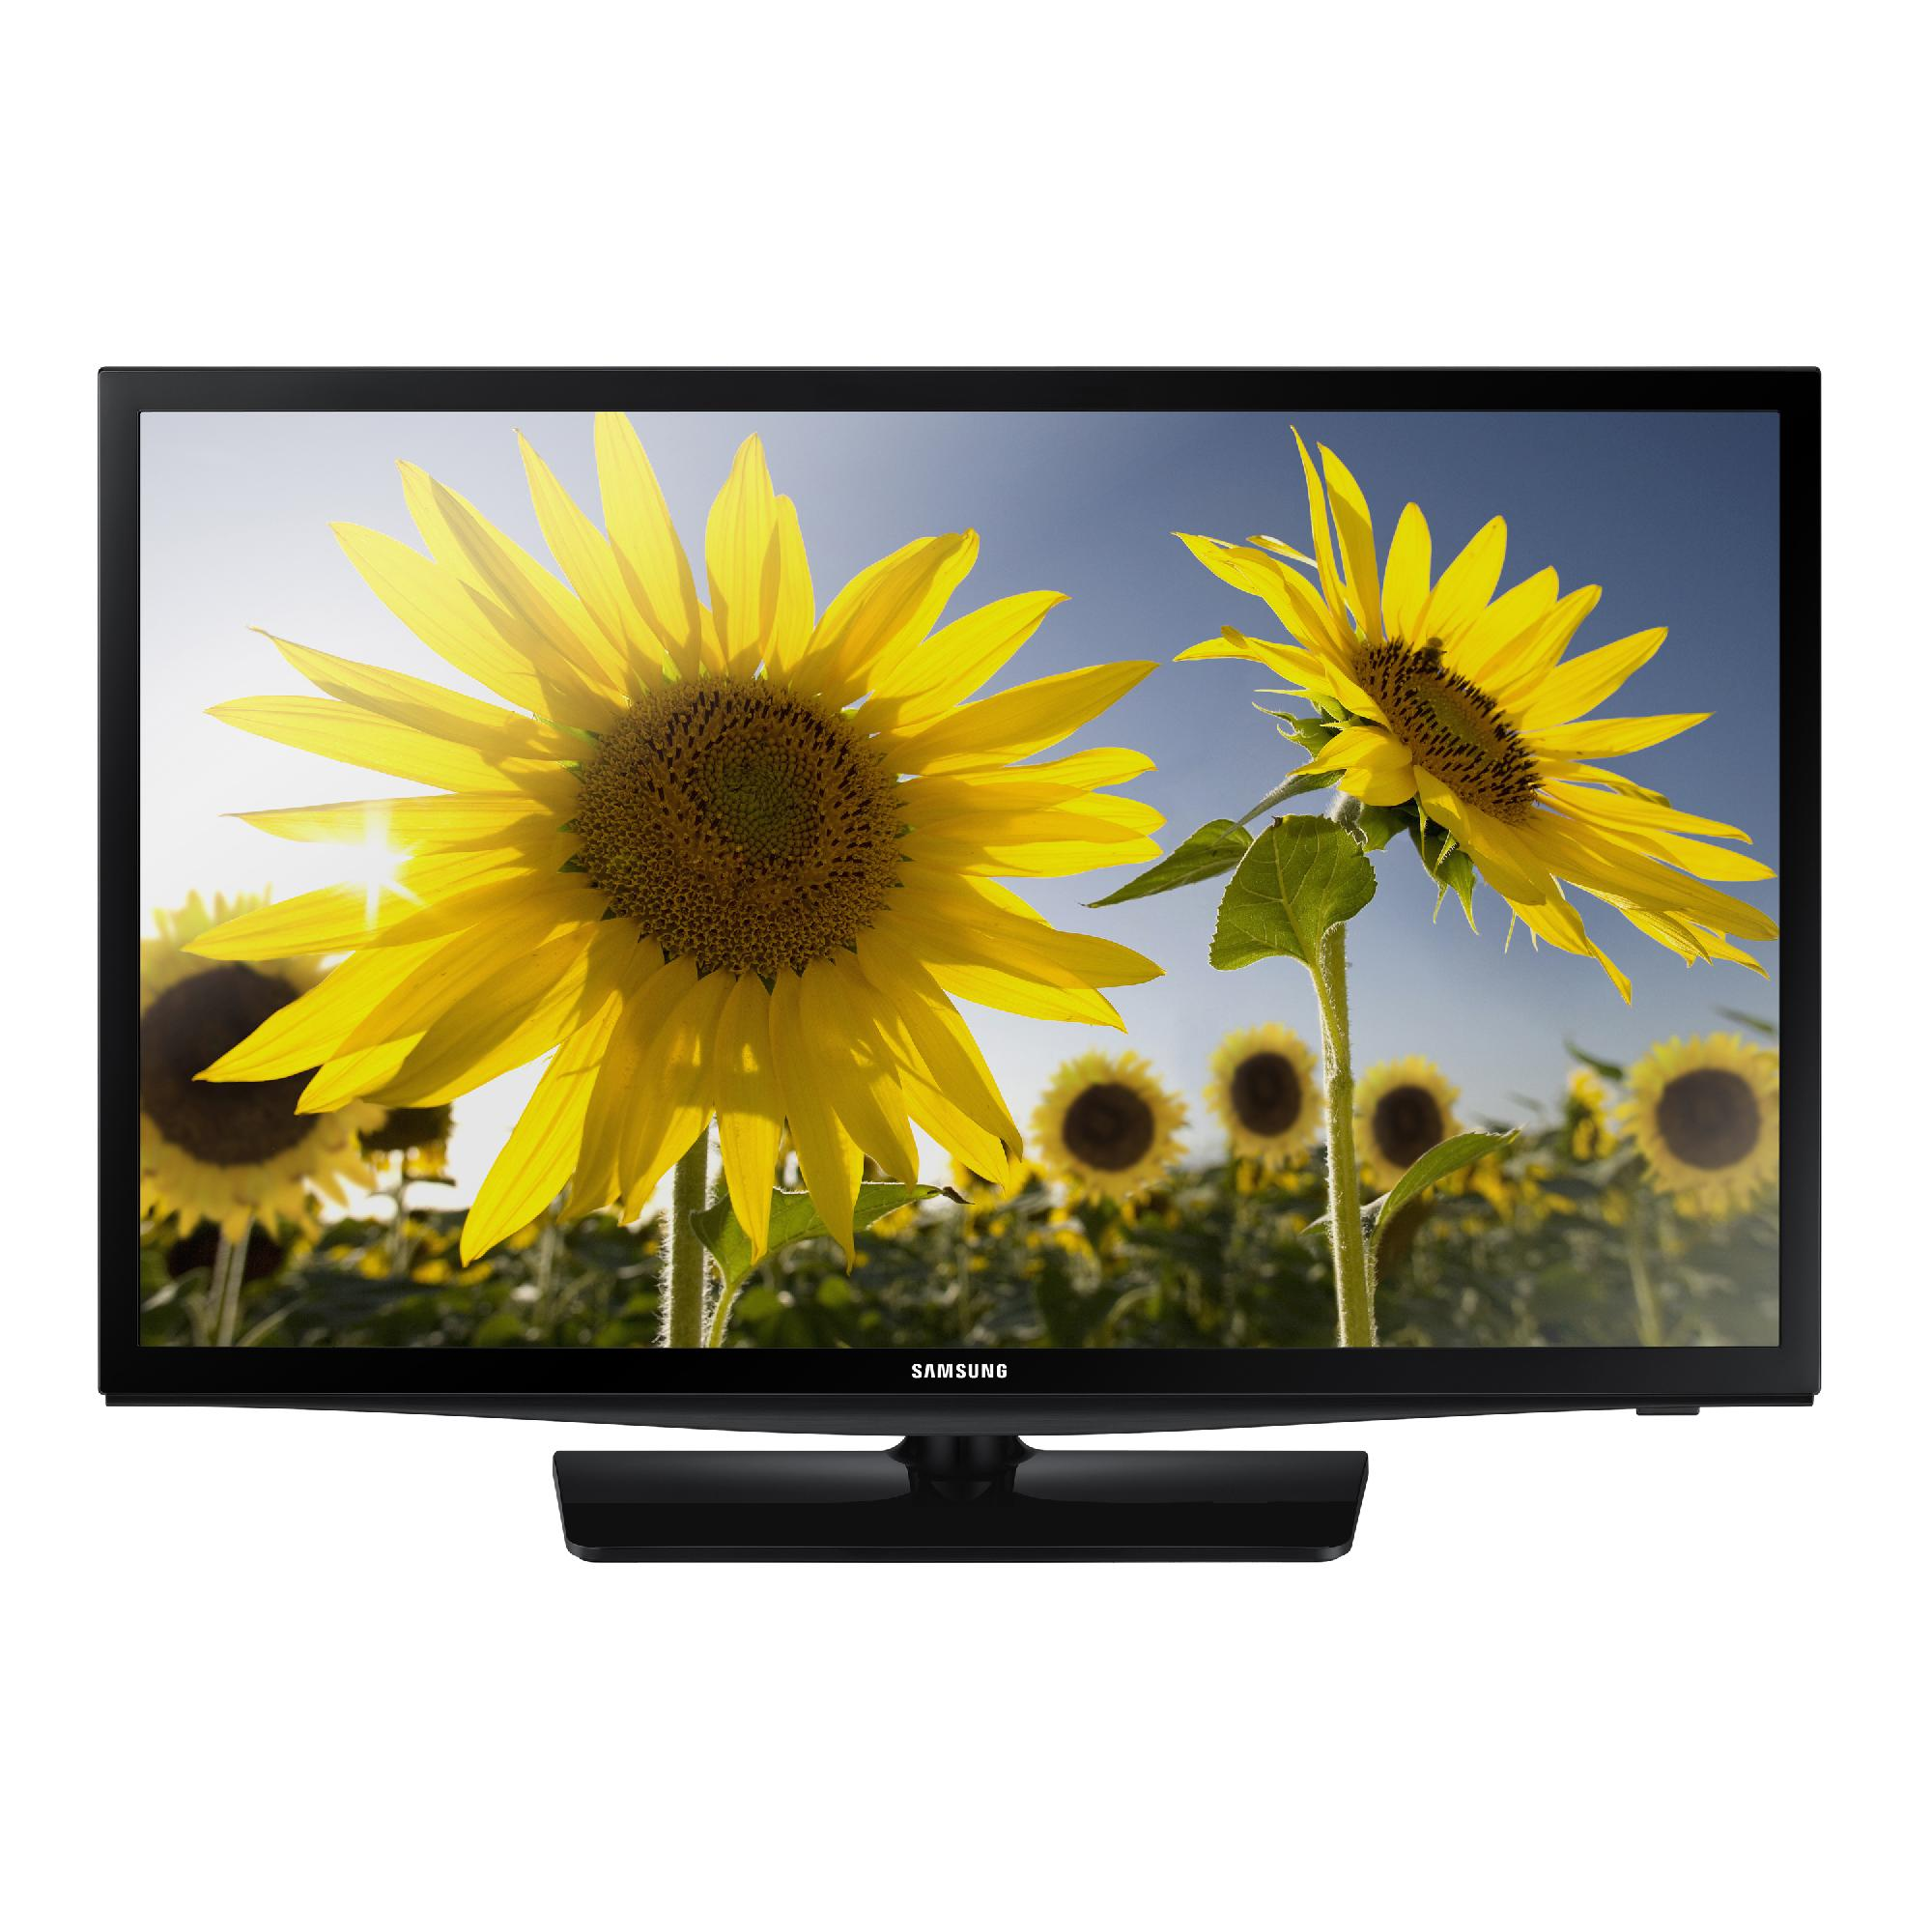 "SAMSUNG 24"" 4500 Series - HD LED TV - 720p, 120MR (Model#: UN24H4500)"